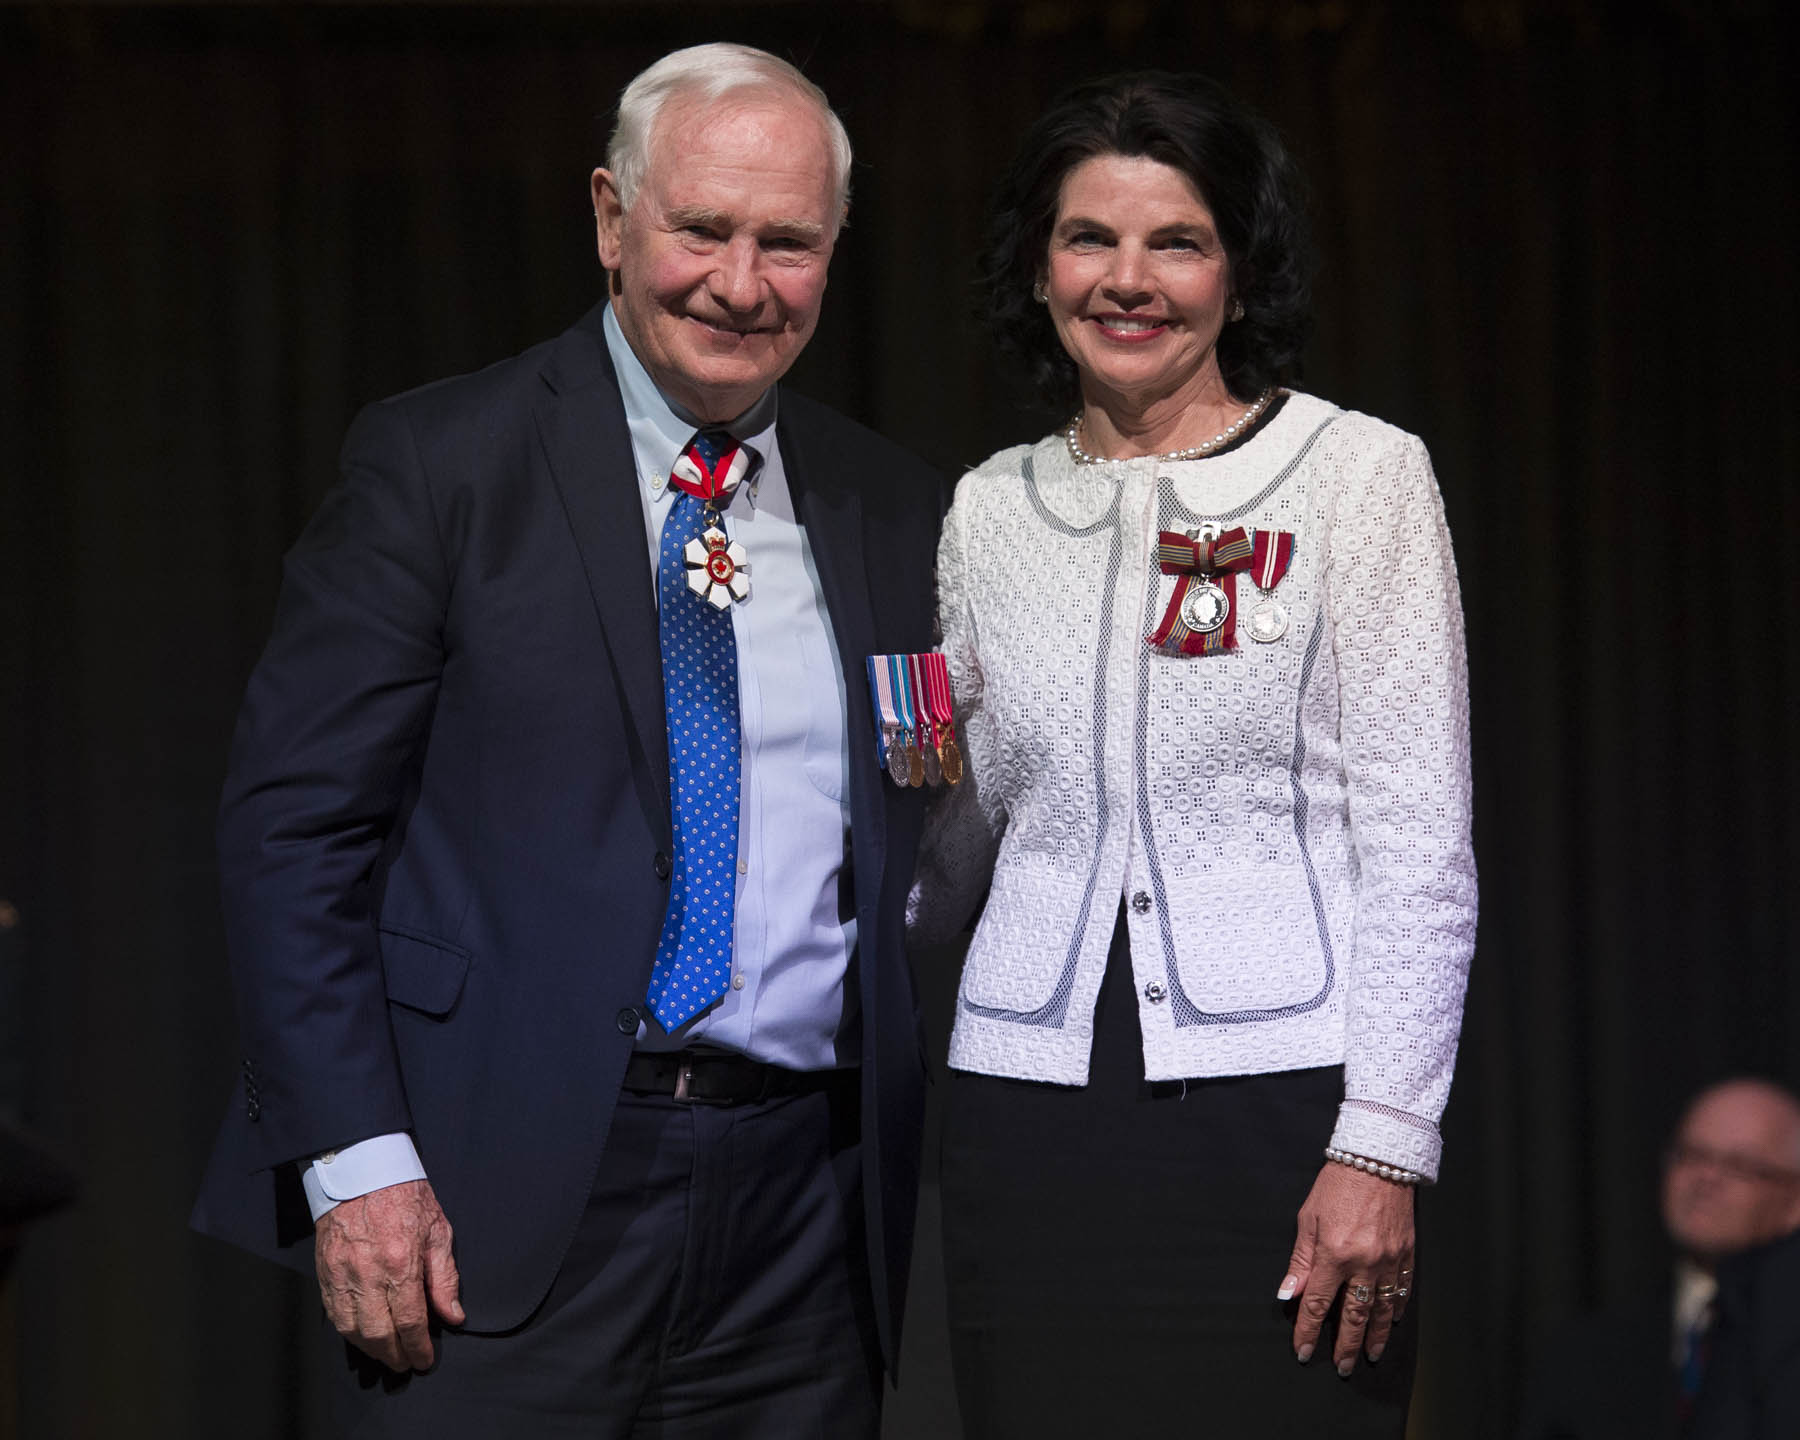 His Excellency presented the Sovereign's Medal for Volunteers to Marie Kenny who has dedicated a large portion of her life to national and provincial programs run by the Federated Women's Institutes of Canada, and even served as its president. By supporting and raising funds for health, education and social initiatives, she has empowered women locally and nationally.